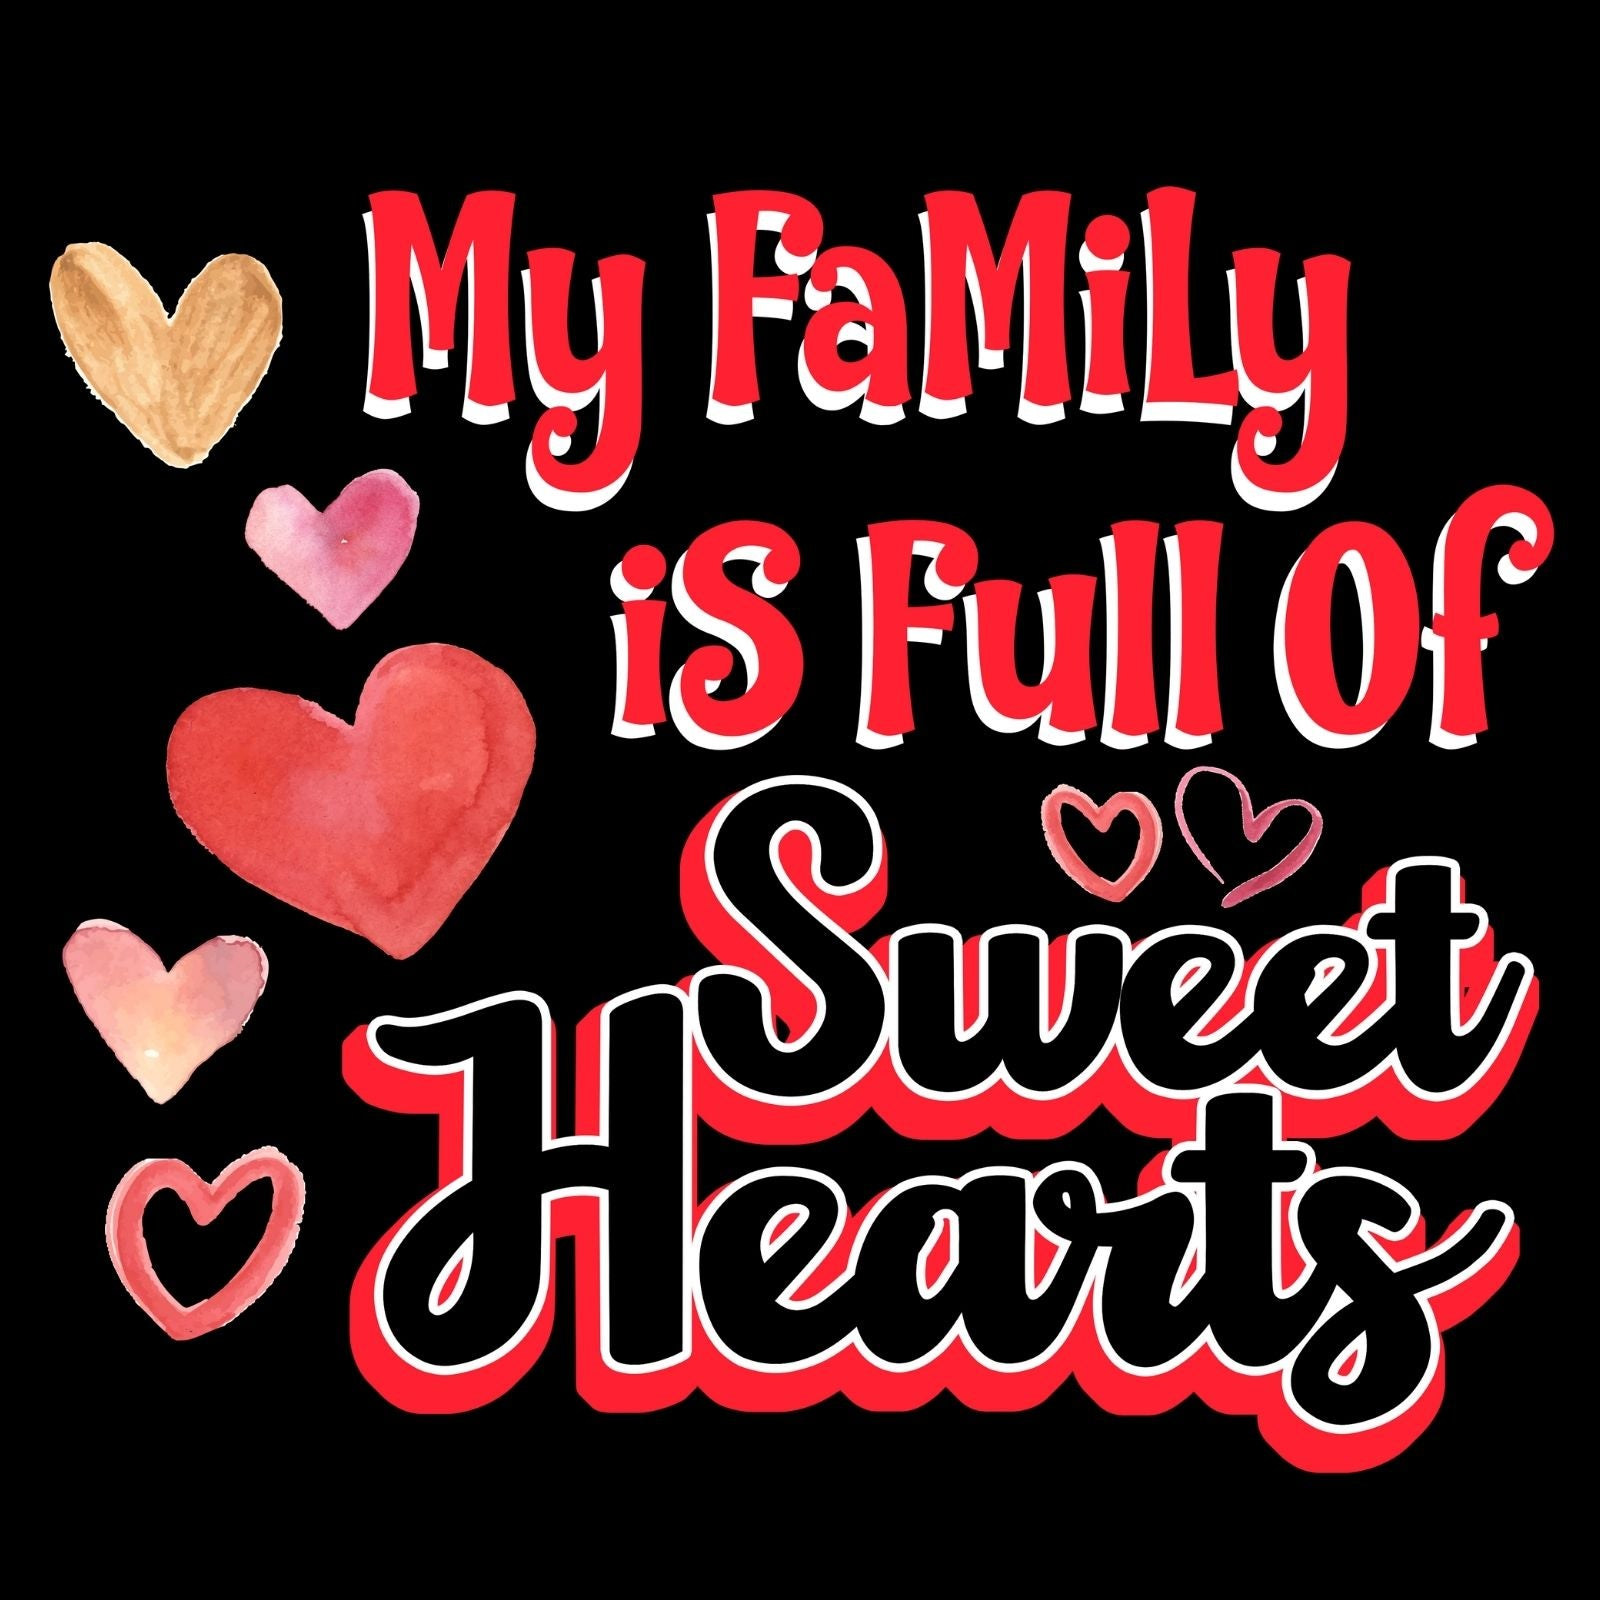 My Family Is Full Of Sweet Hearts - Bastard Graphics